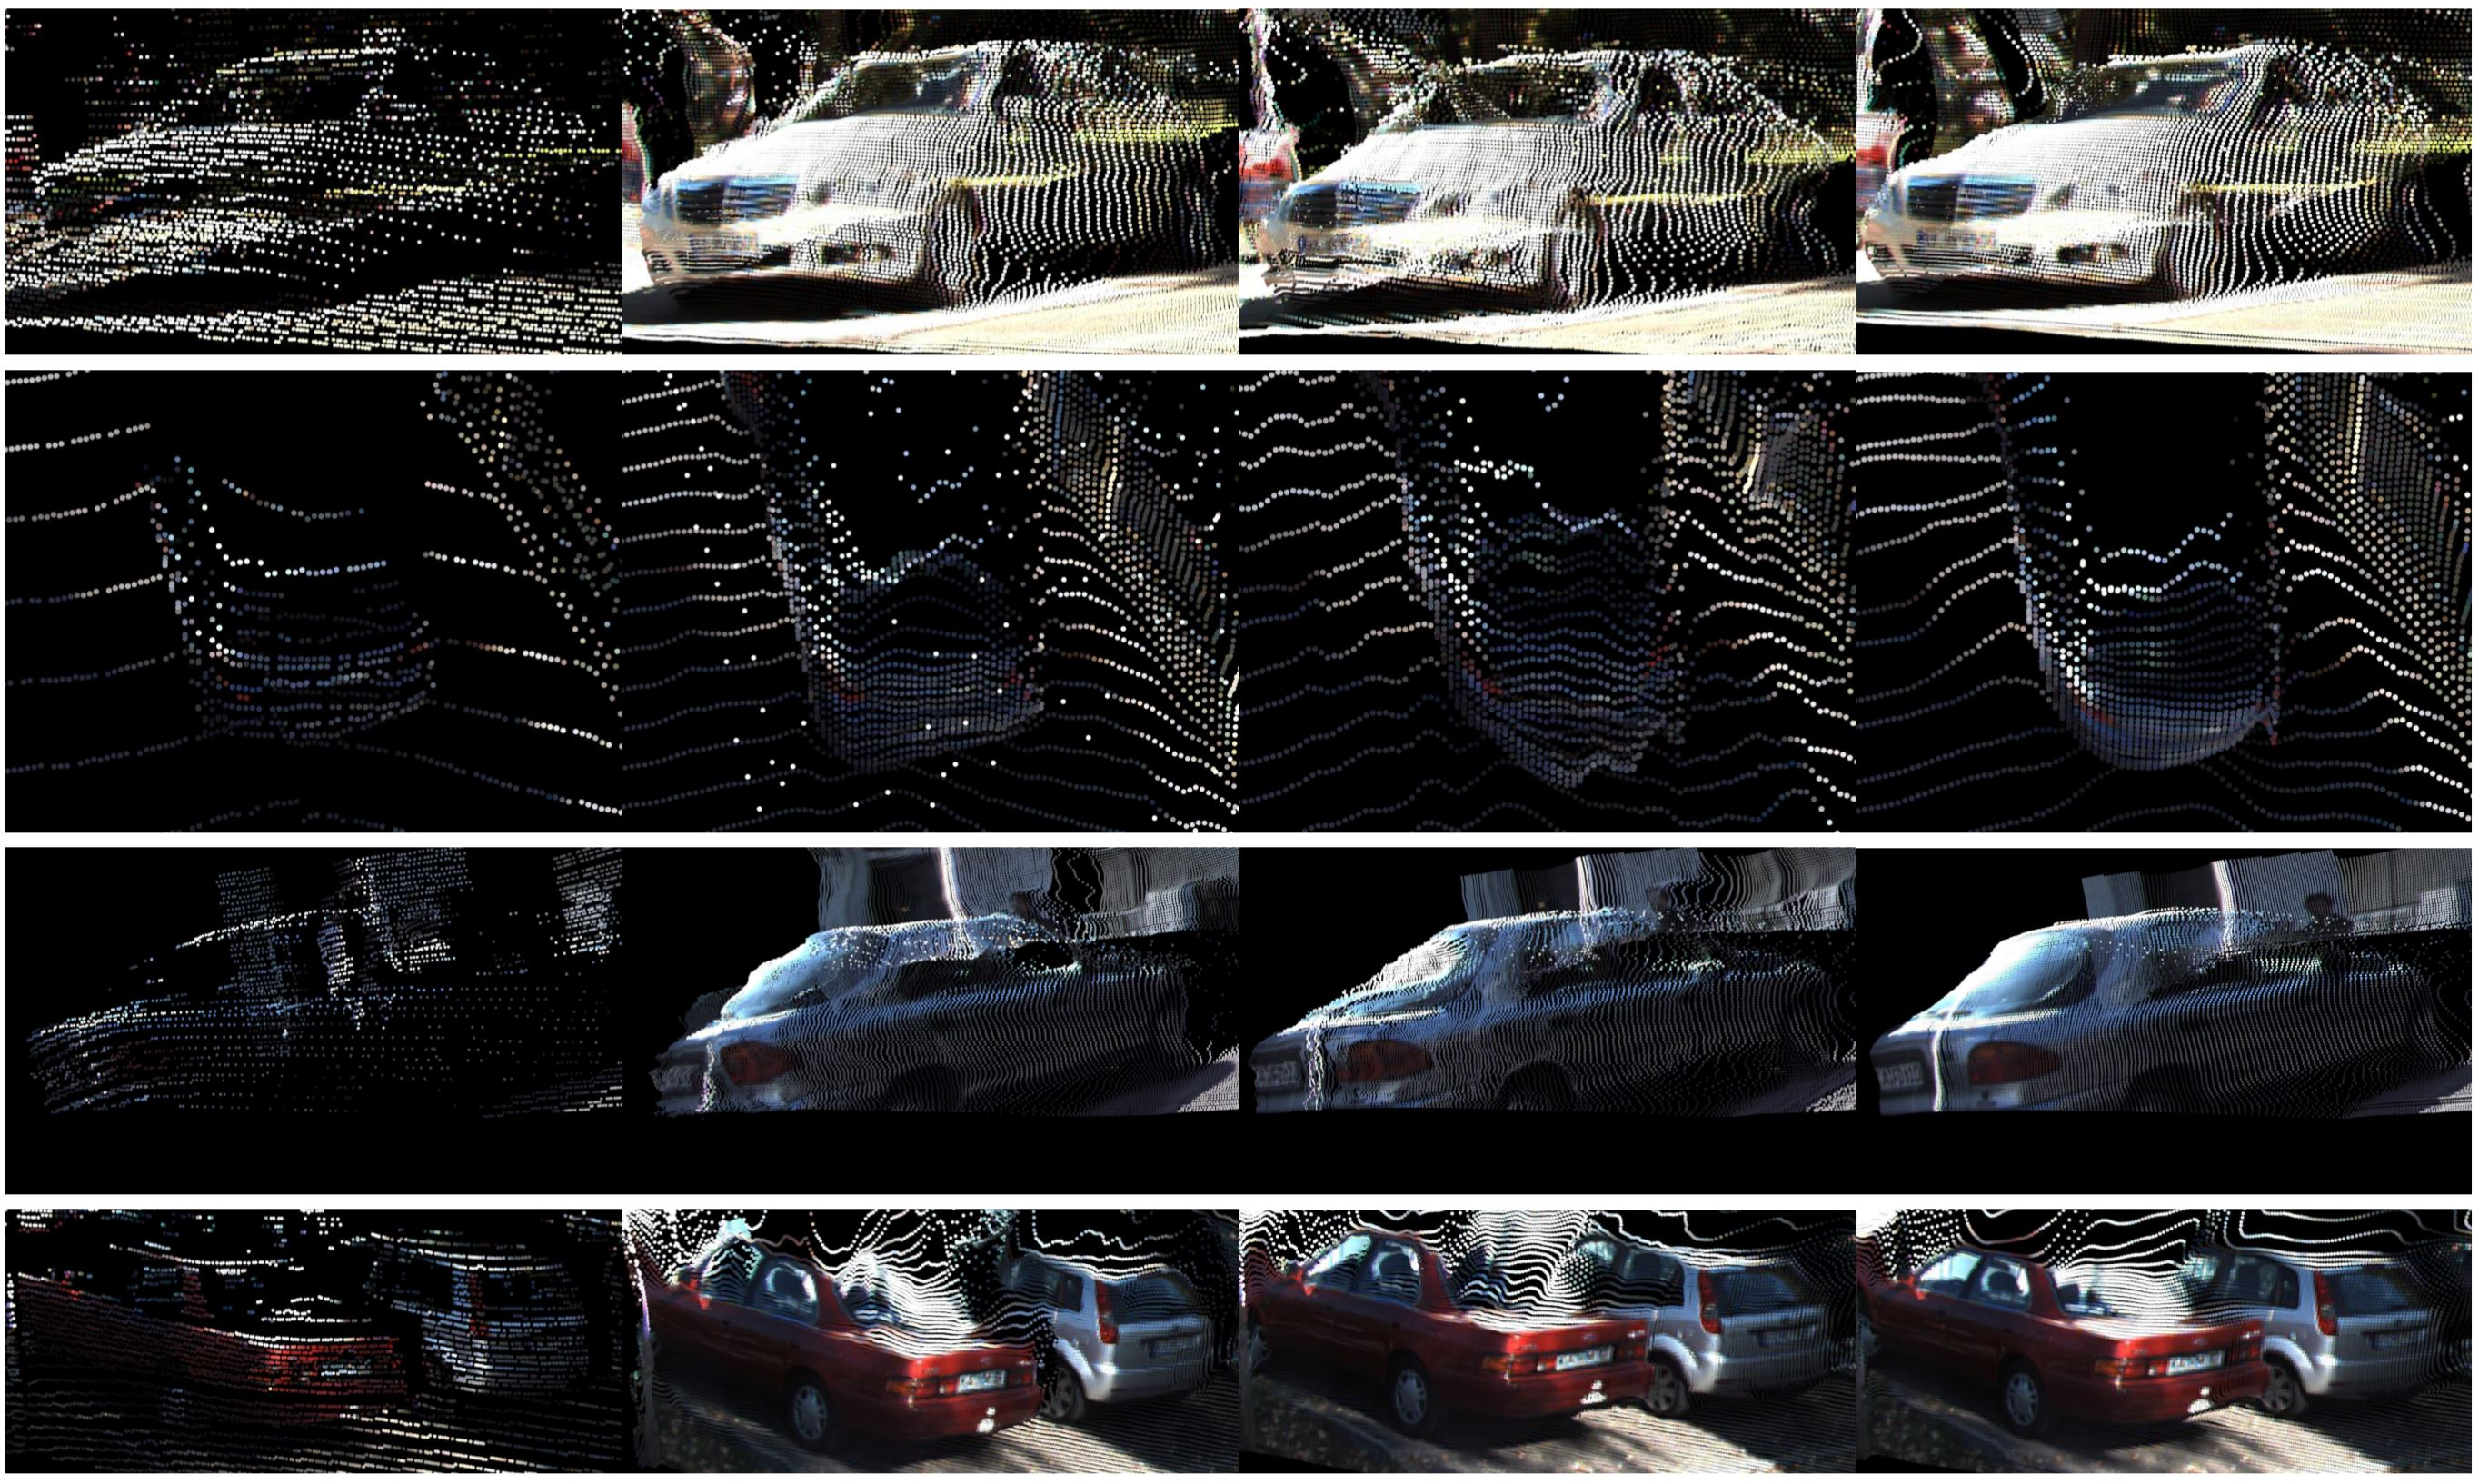 Point cloud visualization of vehicles circled in Fig.